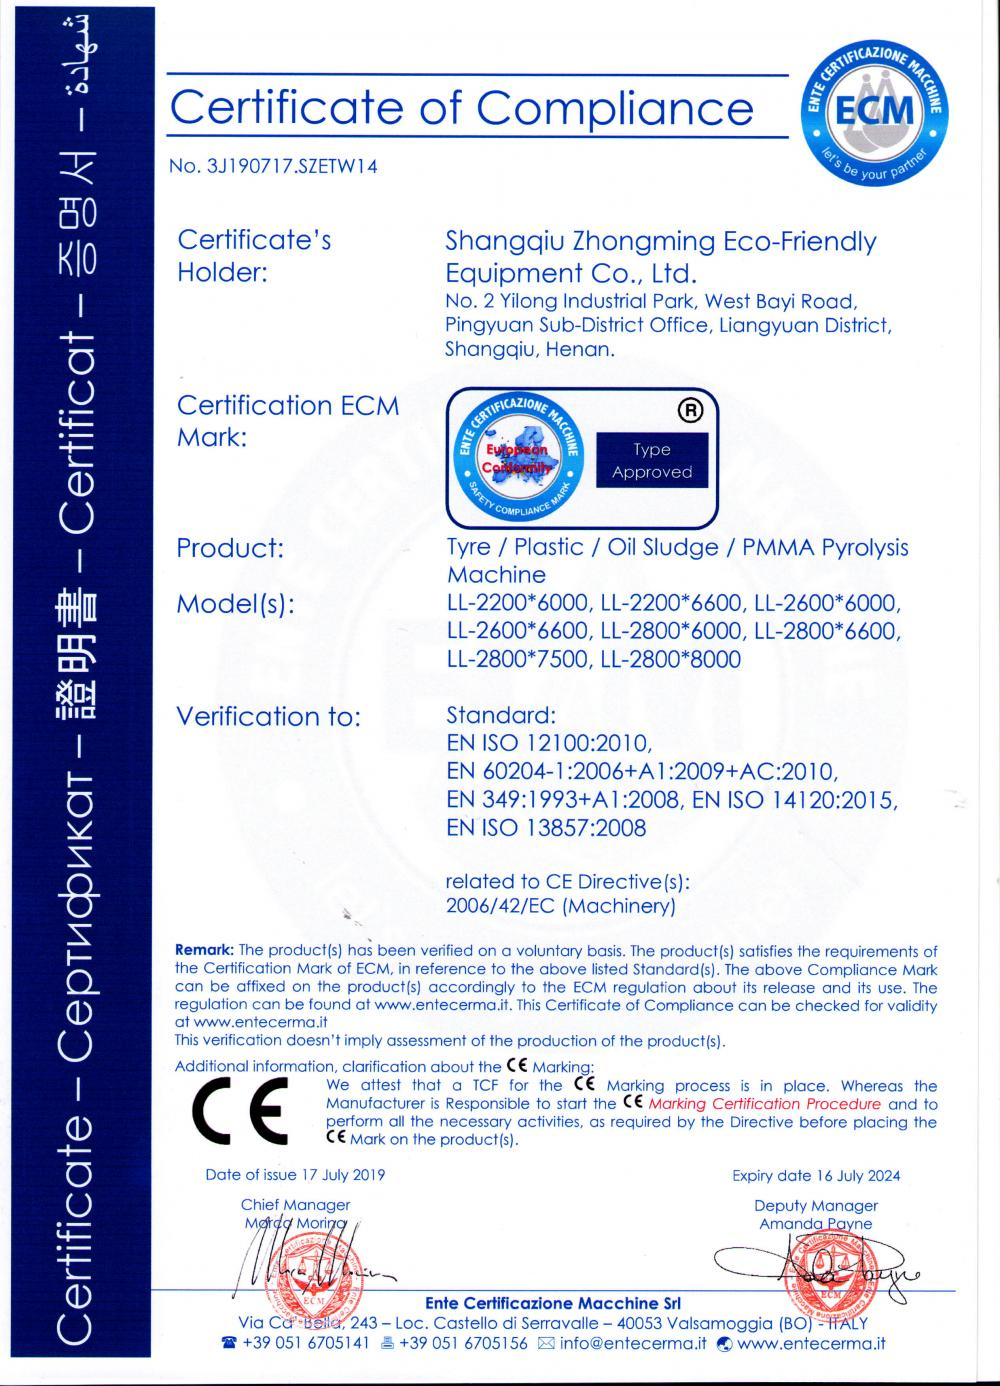 CE certification for Waste Pyrolysis machine